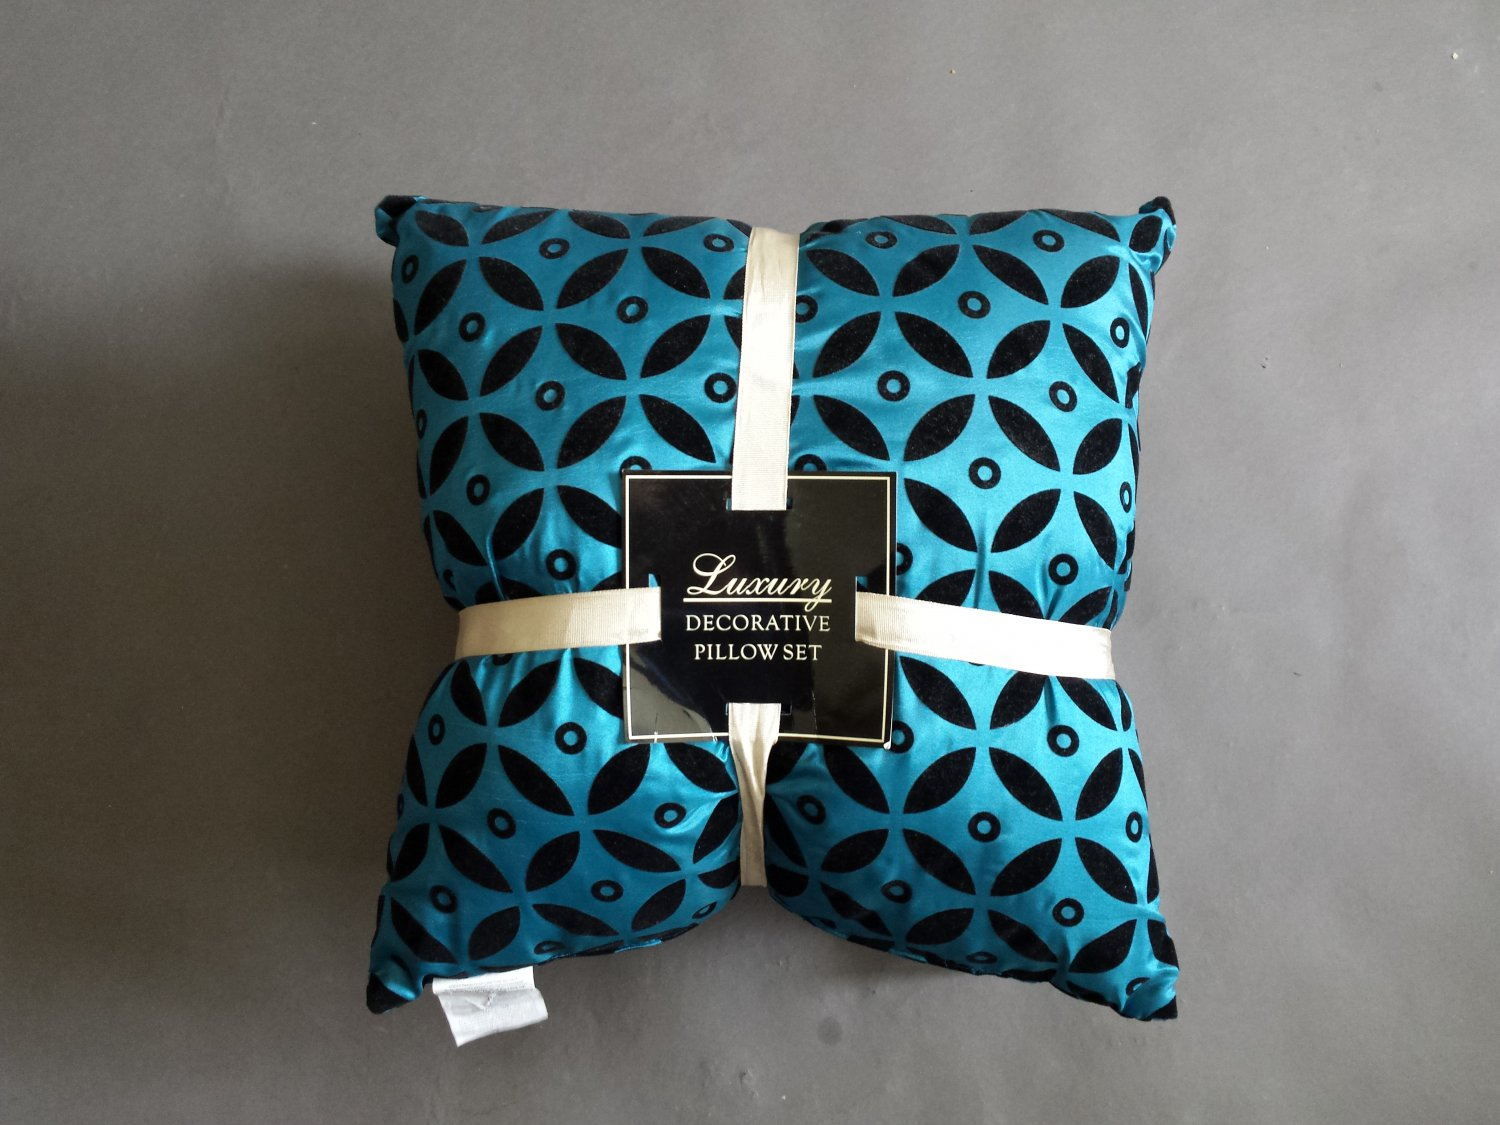 Teal And Black Decorative Pillows : Luxury Decorative Teal and Black Pillow Set (2)